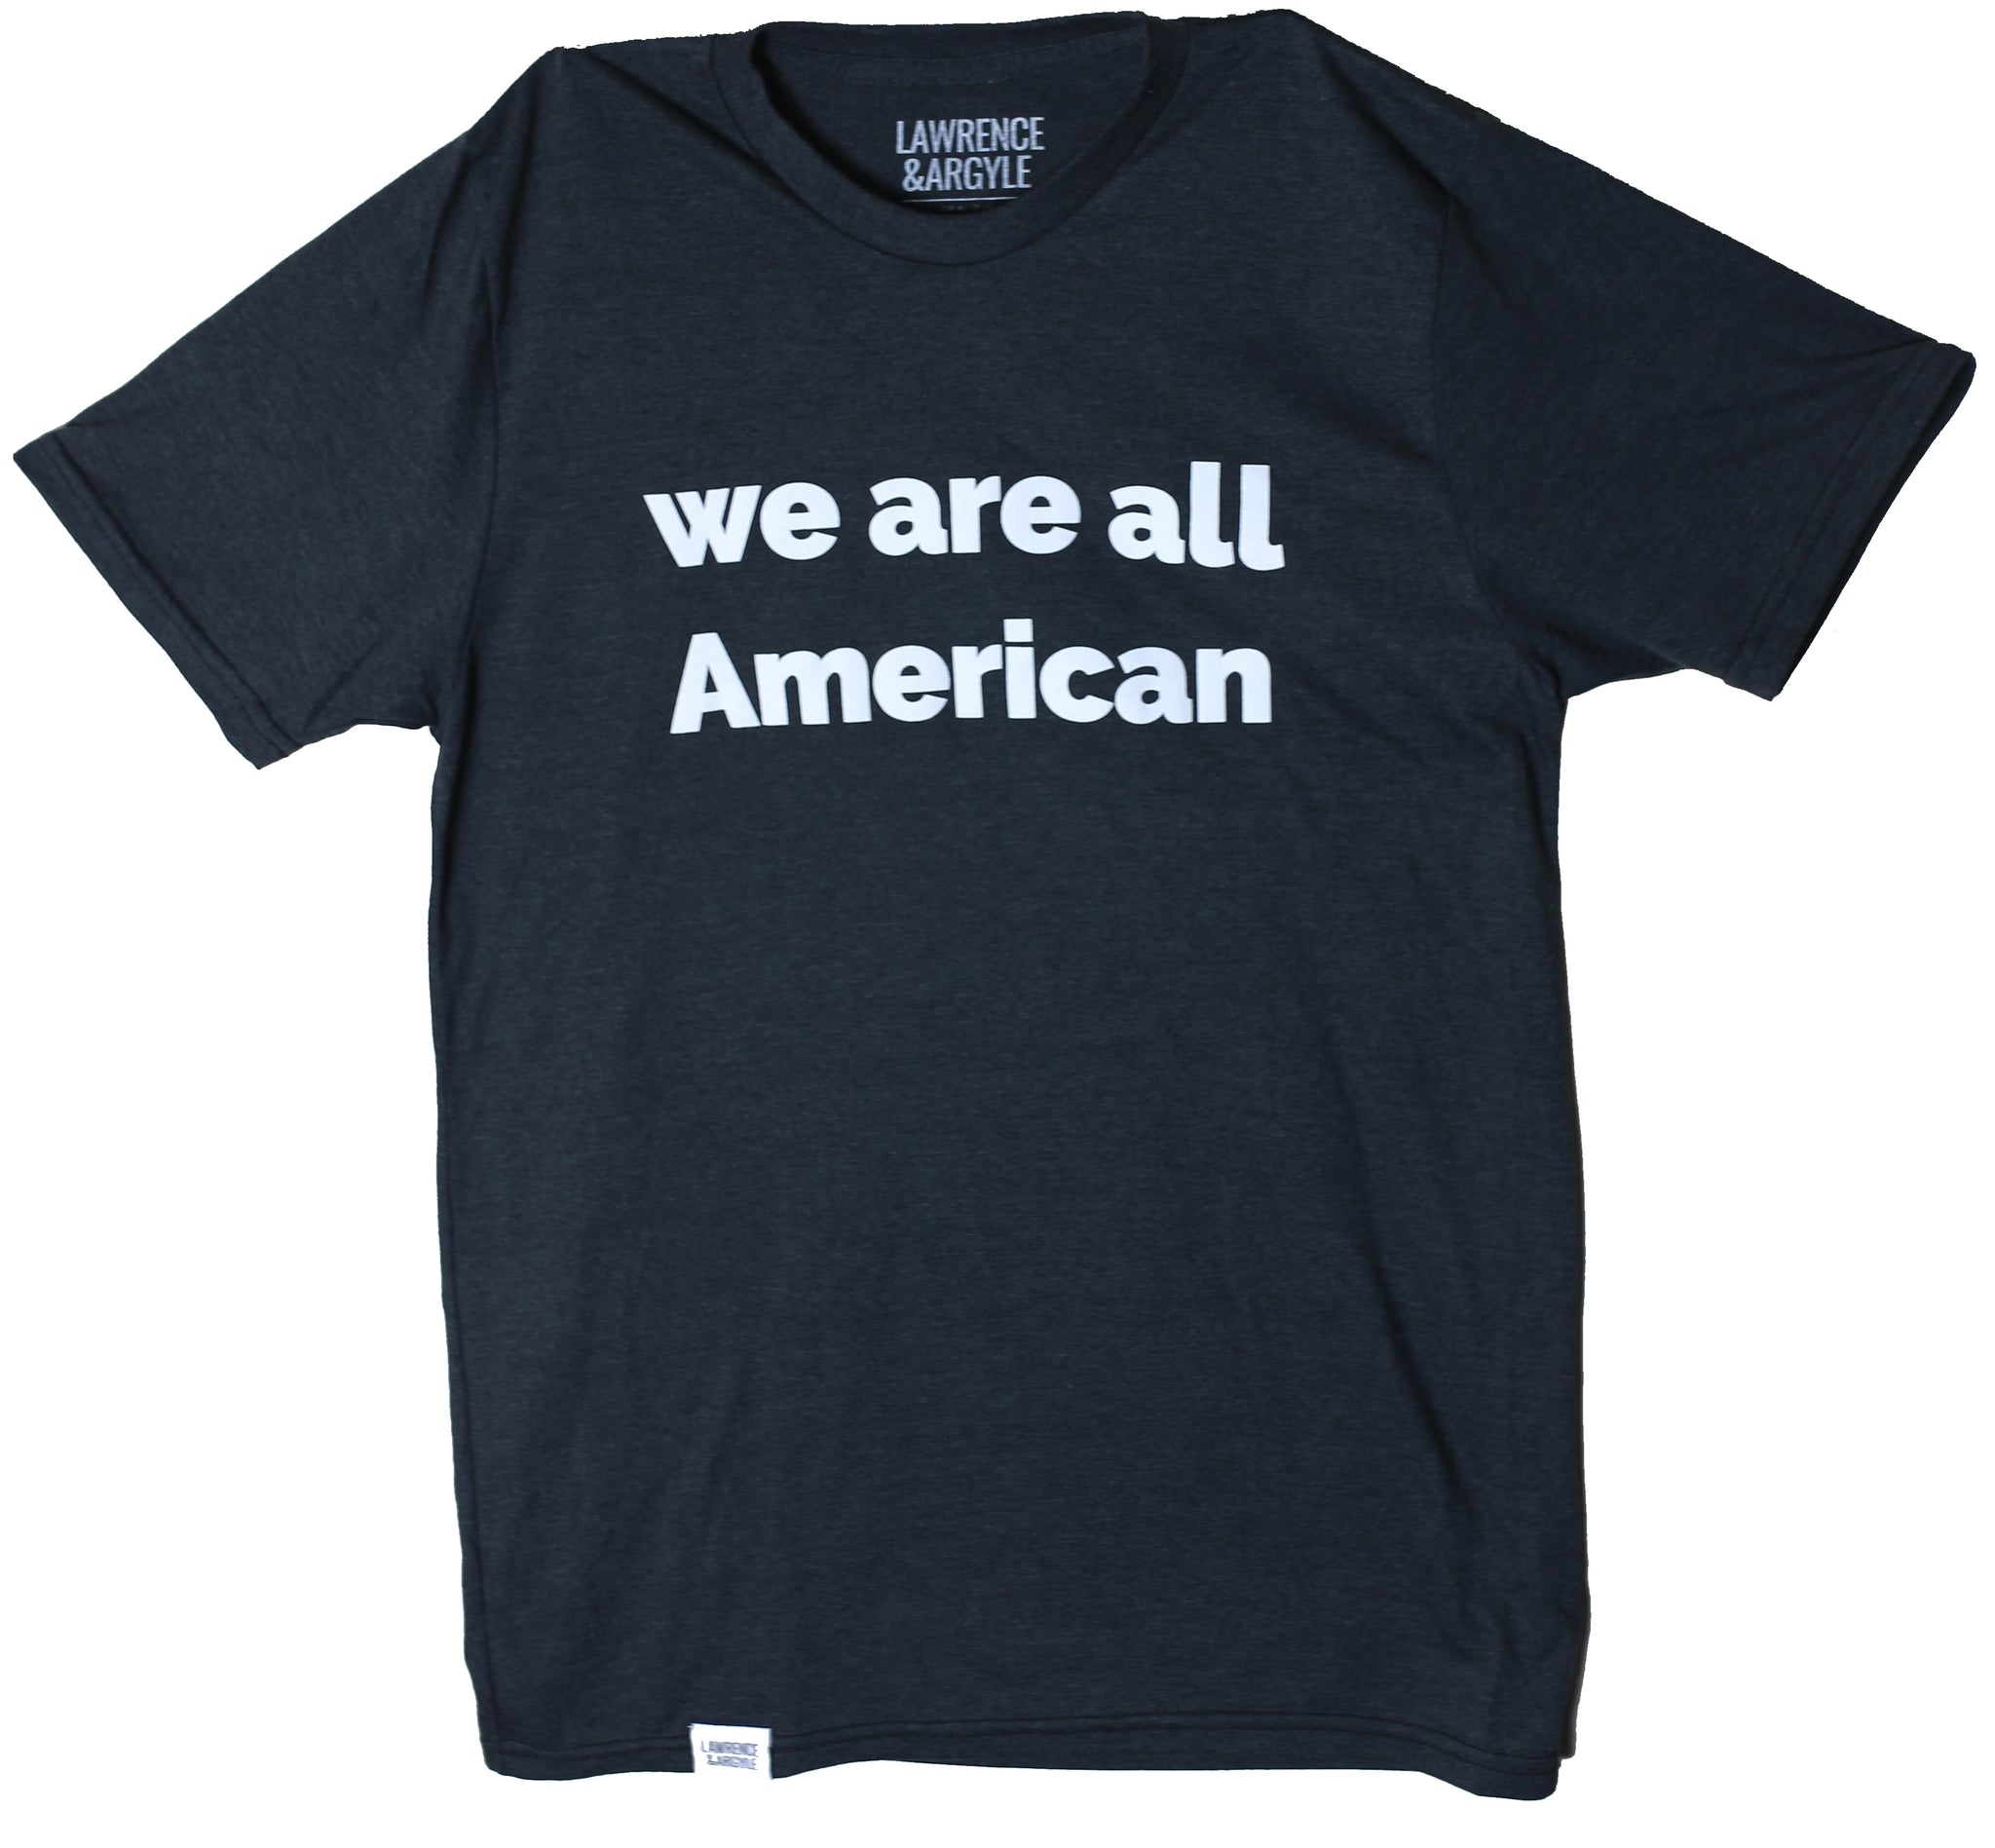 We Are All American - Black Unisex Crewneck Shirt